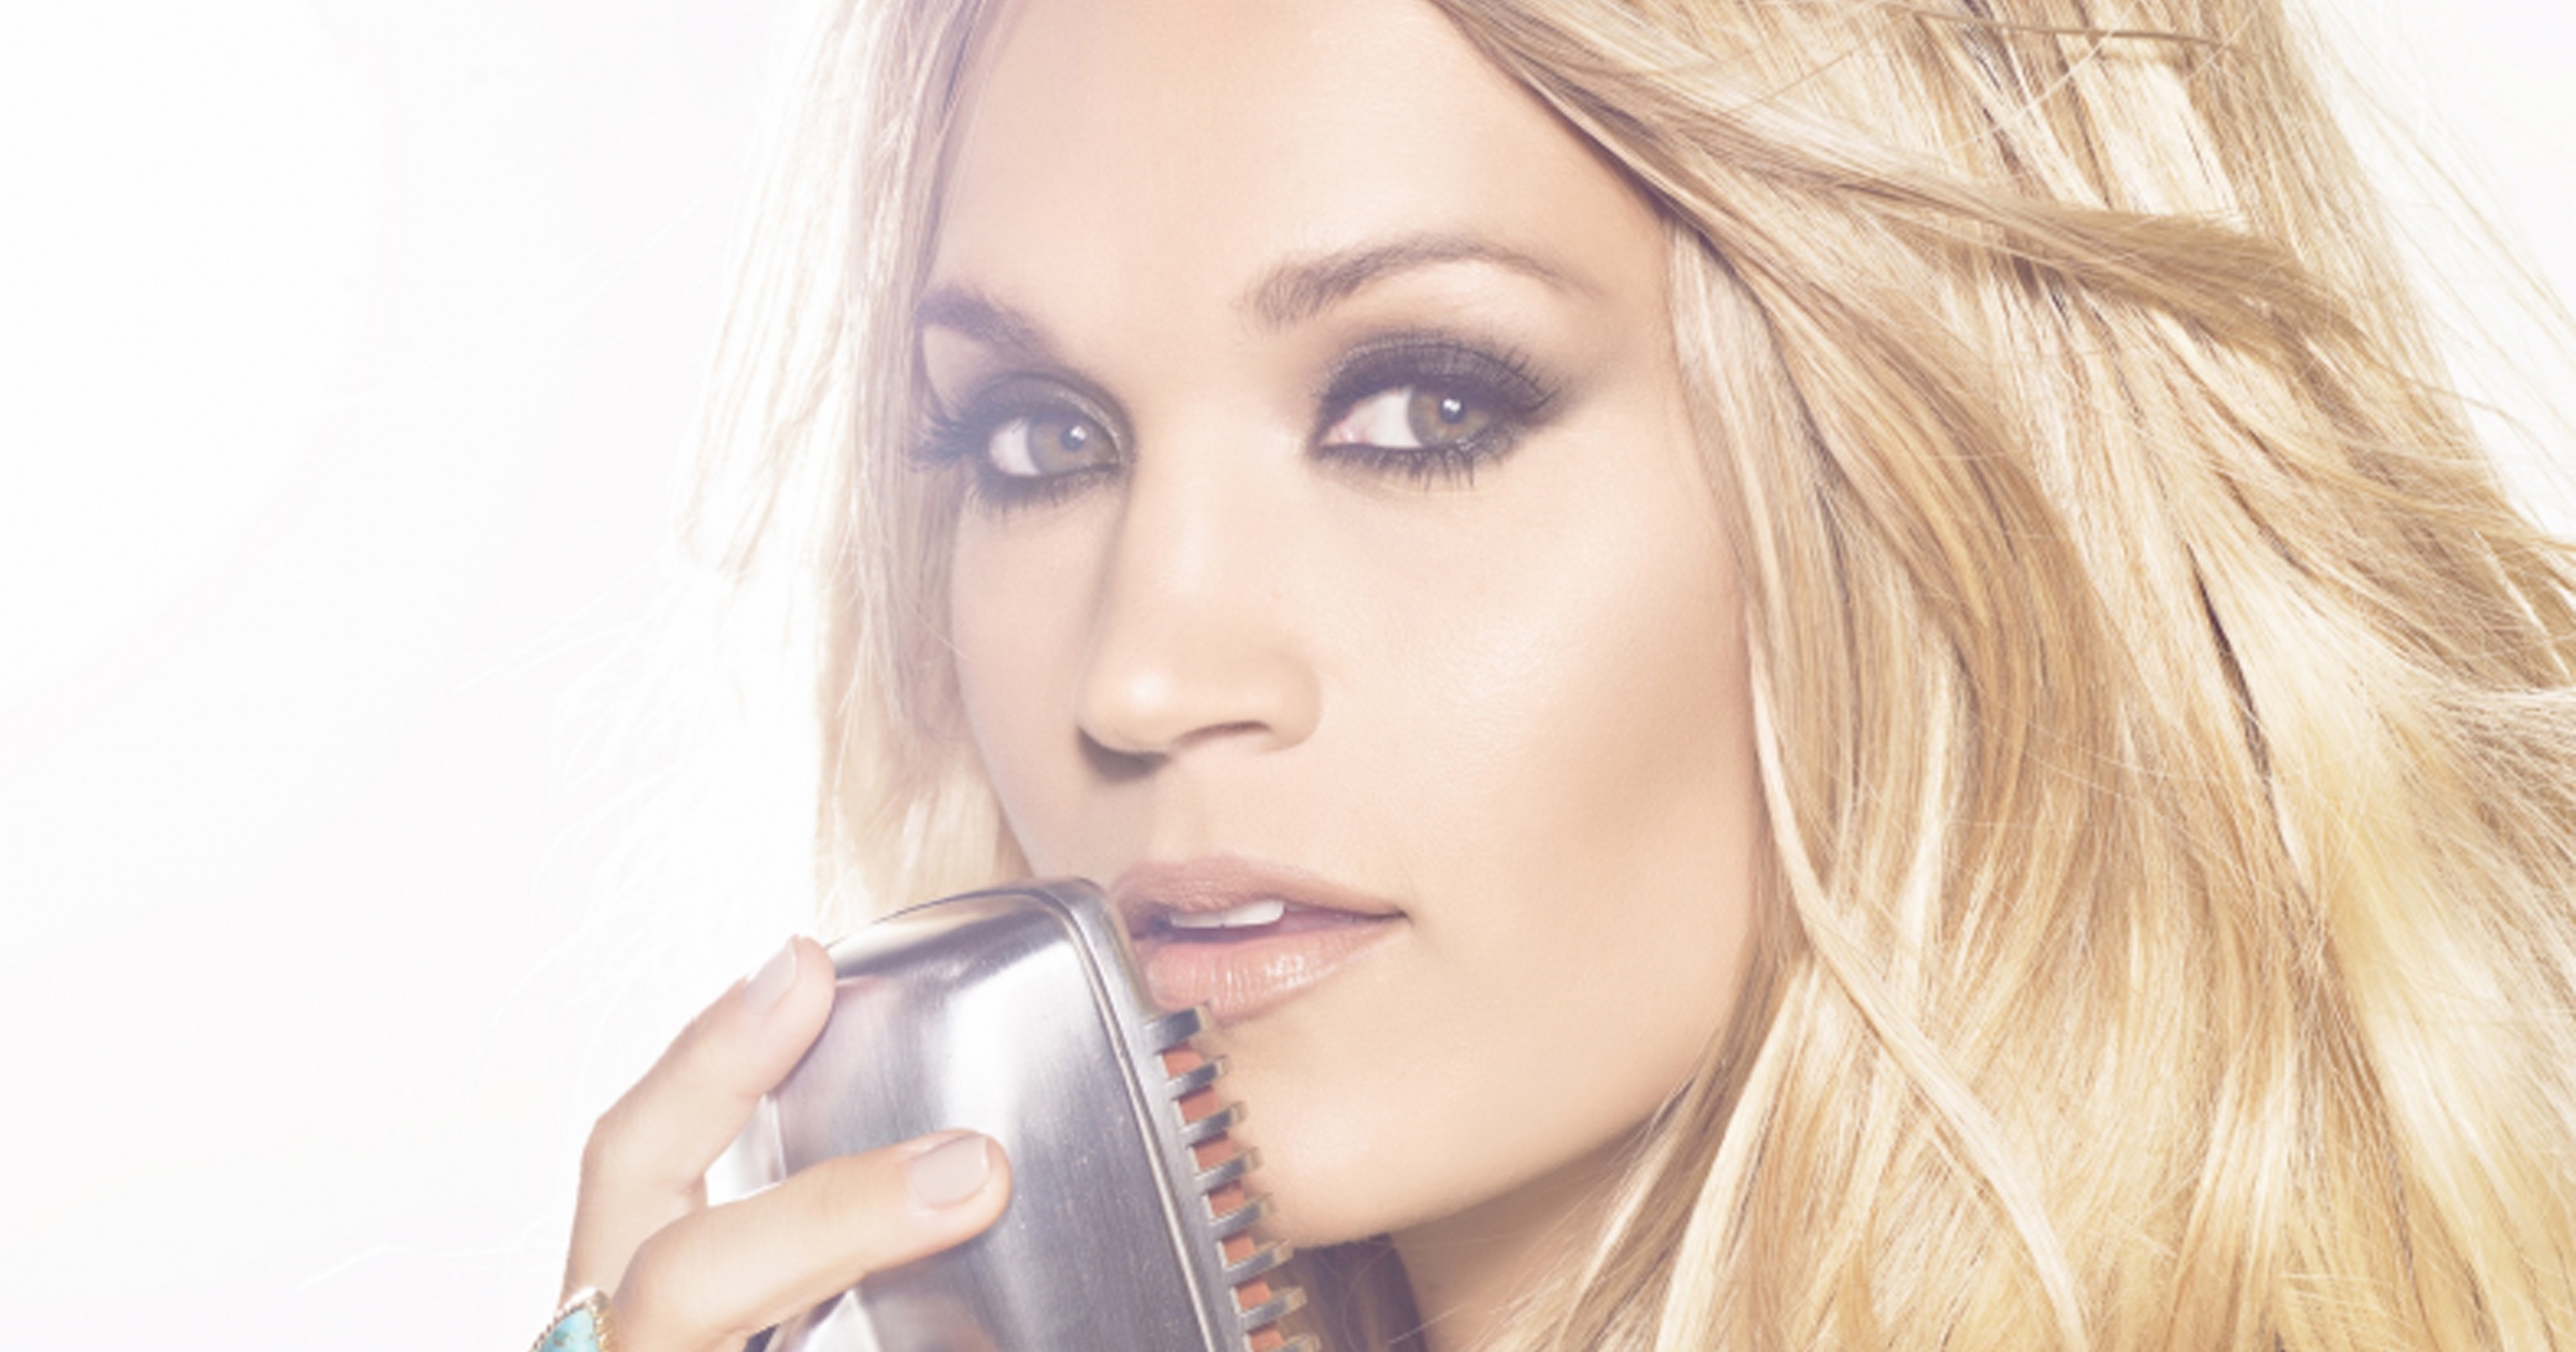 new underwood latin singles Find album reviews, stream songs, credits and award information for storyteller - carrie underwood on allmusic - 2015 - something in the water, the new single tacked.